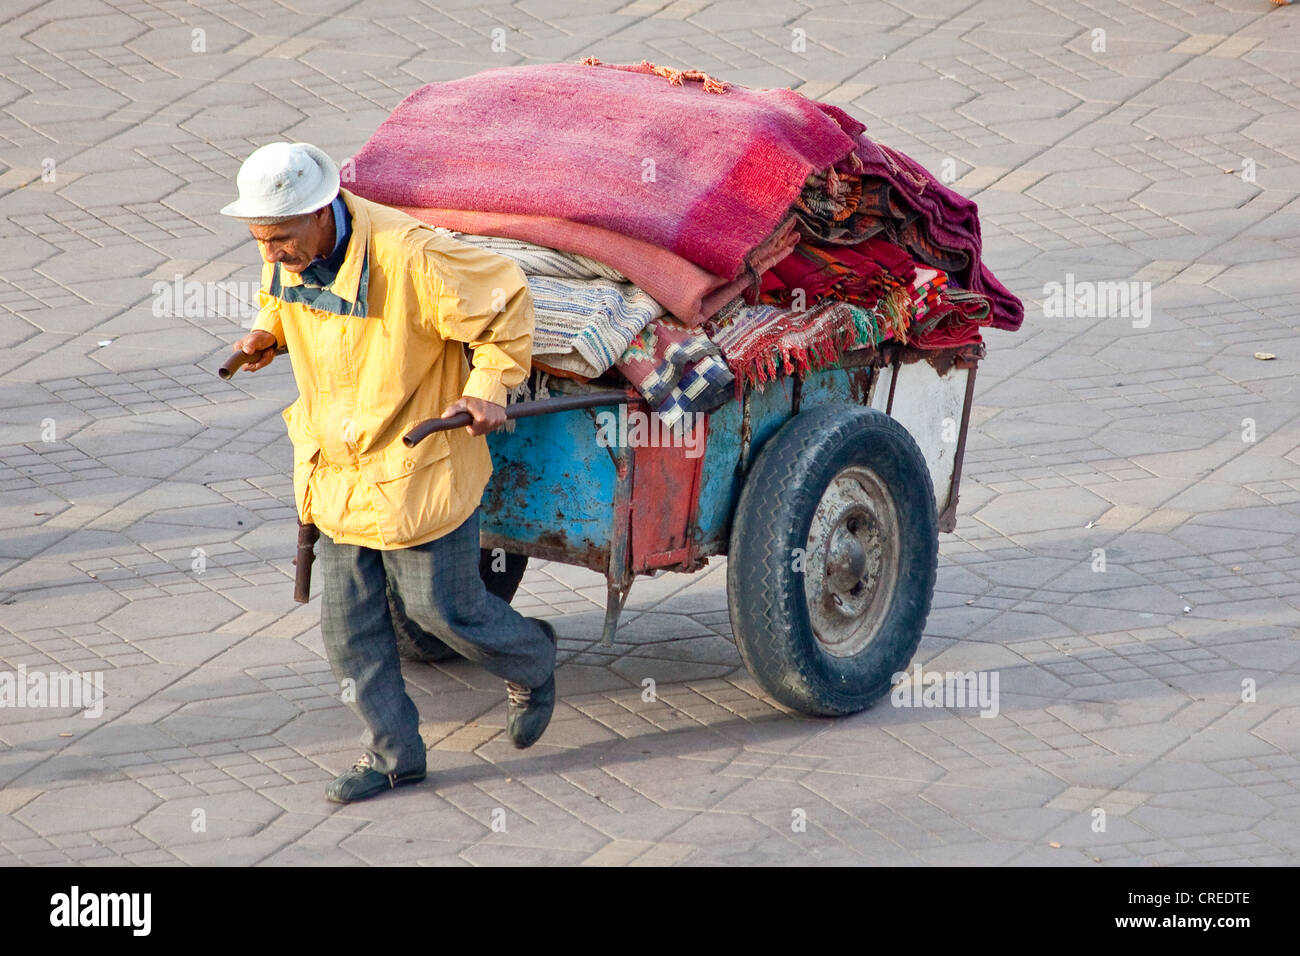 Man transporting carpets with a handcart, Djemaa El Fna square, medina or old town, UNESCO World Heritage Site, - Stock Image